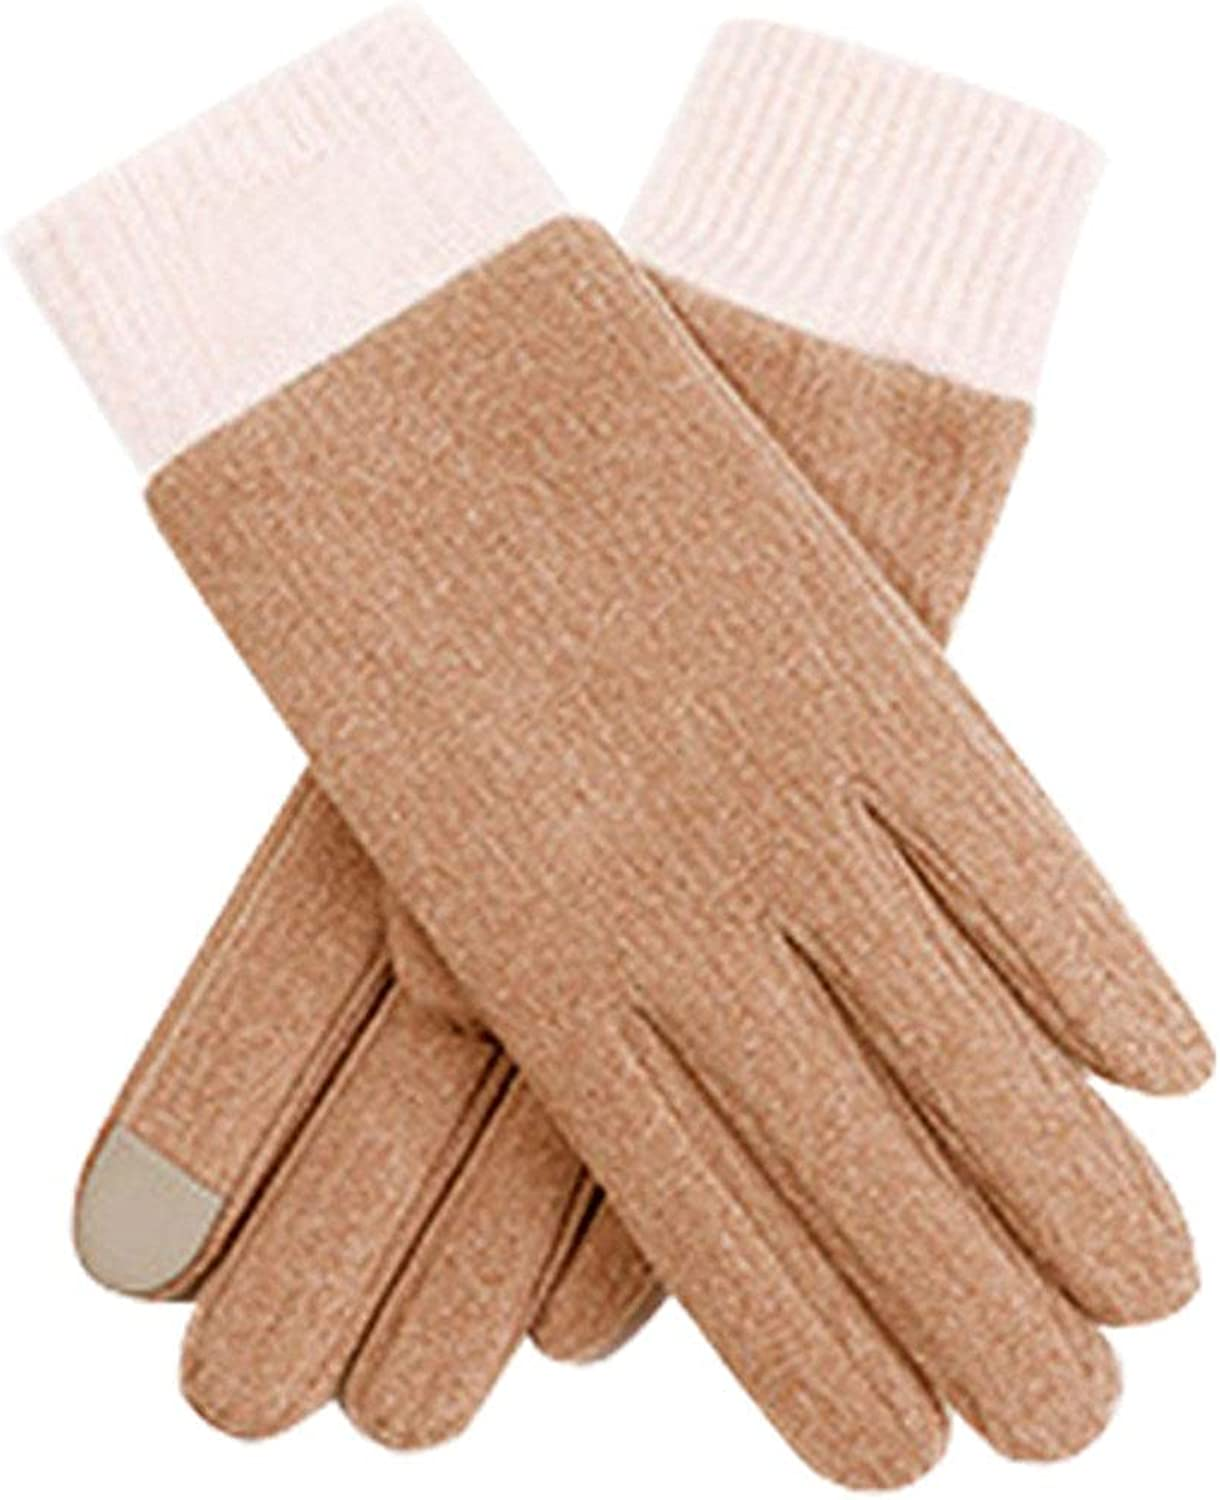 Women Winter Warm Gloves,Elastic Cuff Gloves,Windproof Lined Thick Gloves,Touch Screen Gloves for Cool Weather